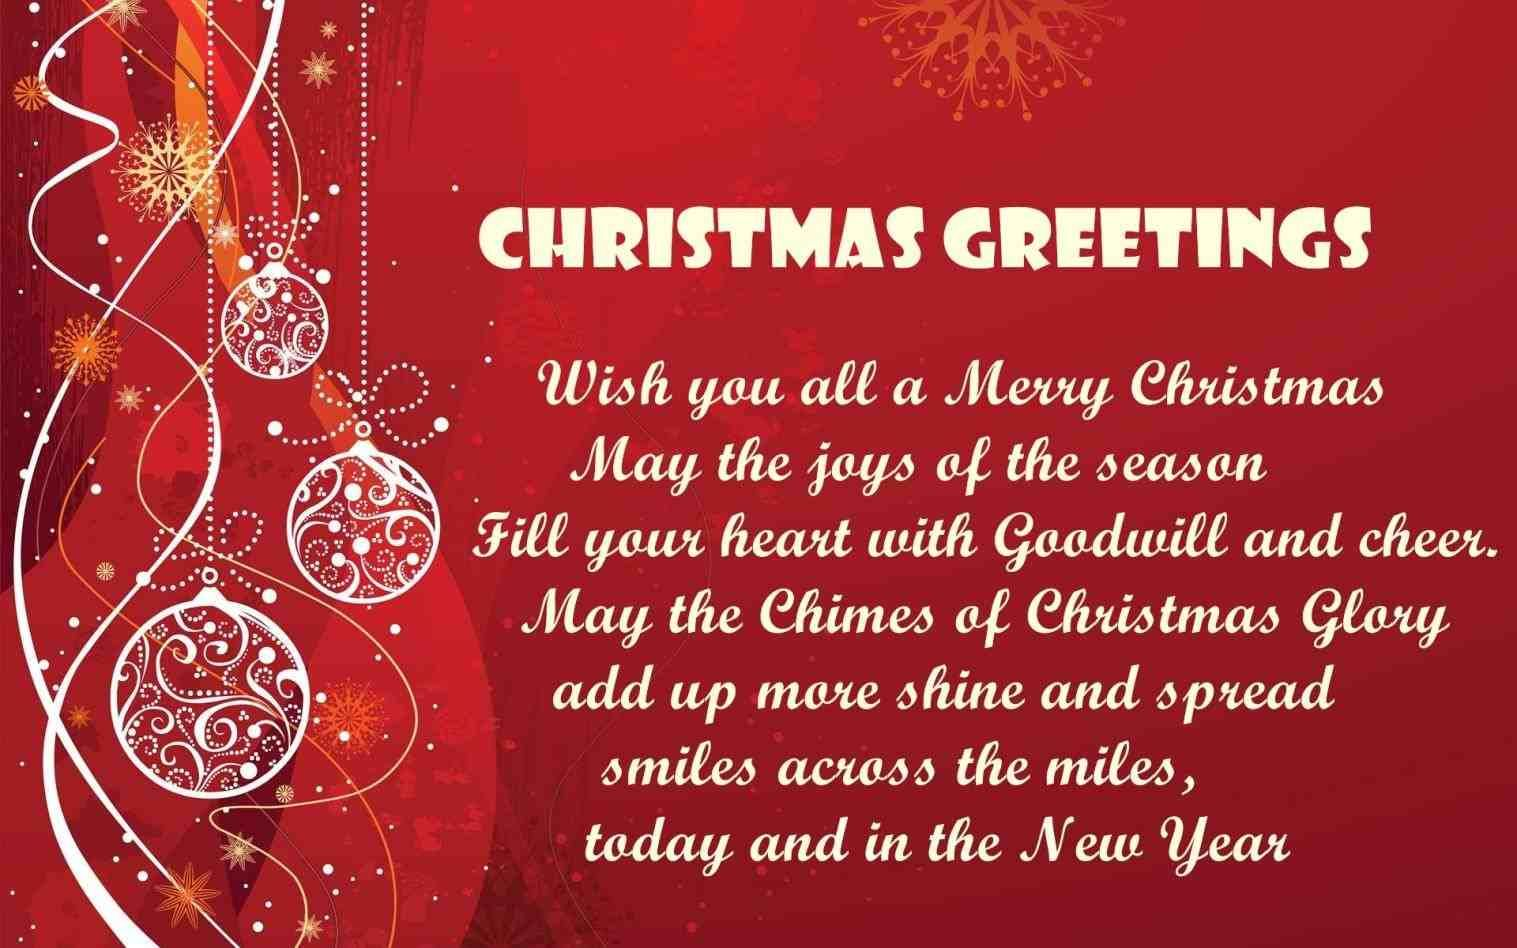 Christmas Day Greetings